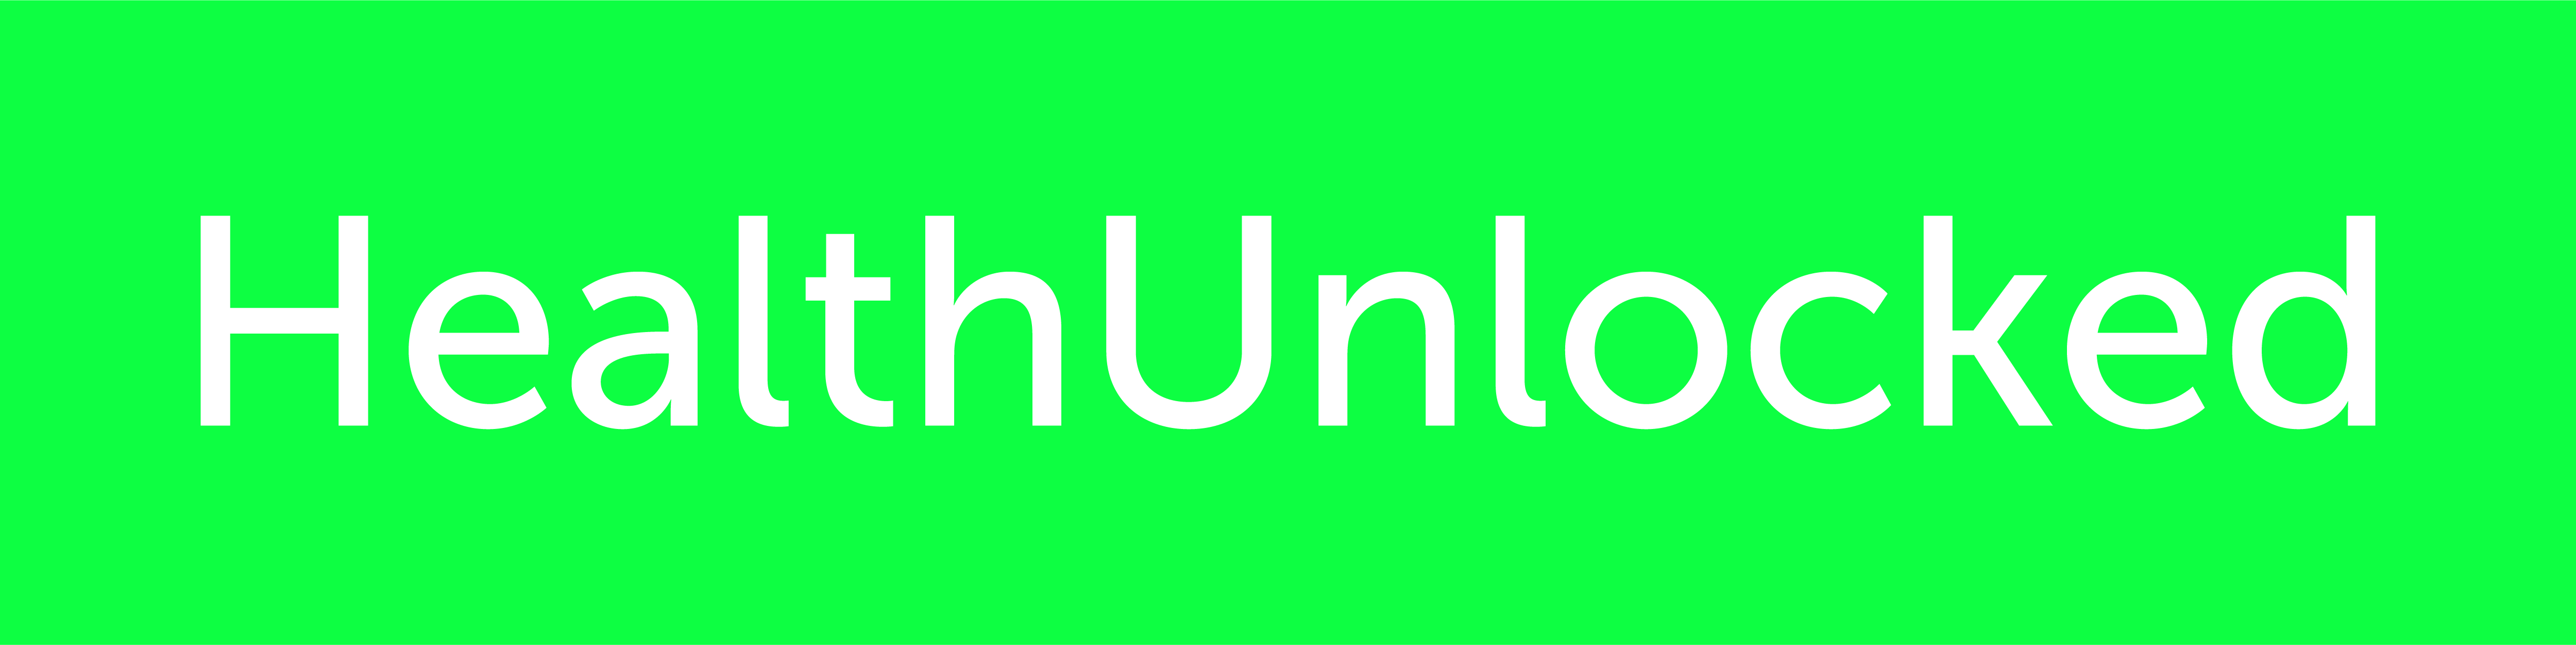 healthunlocked---logo-for-print---boxed.jpg